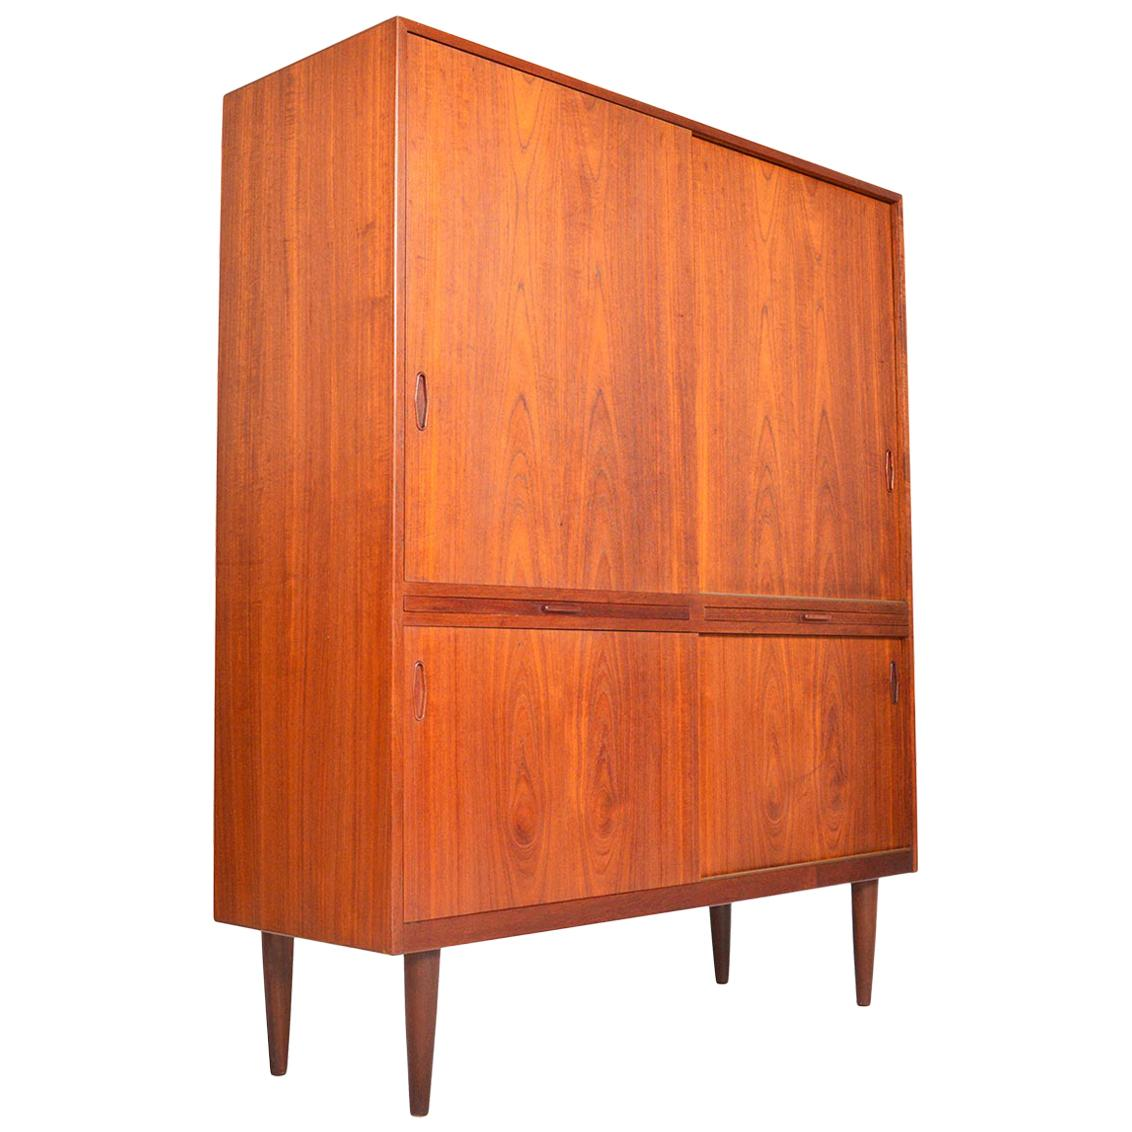 Danish Modern Teak Sliding Door Cupboard Bureau  sc 1 st  1stDibs & Antique and Vintage Cupboards - 1539 For Sale at 1stdibs